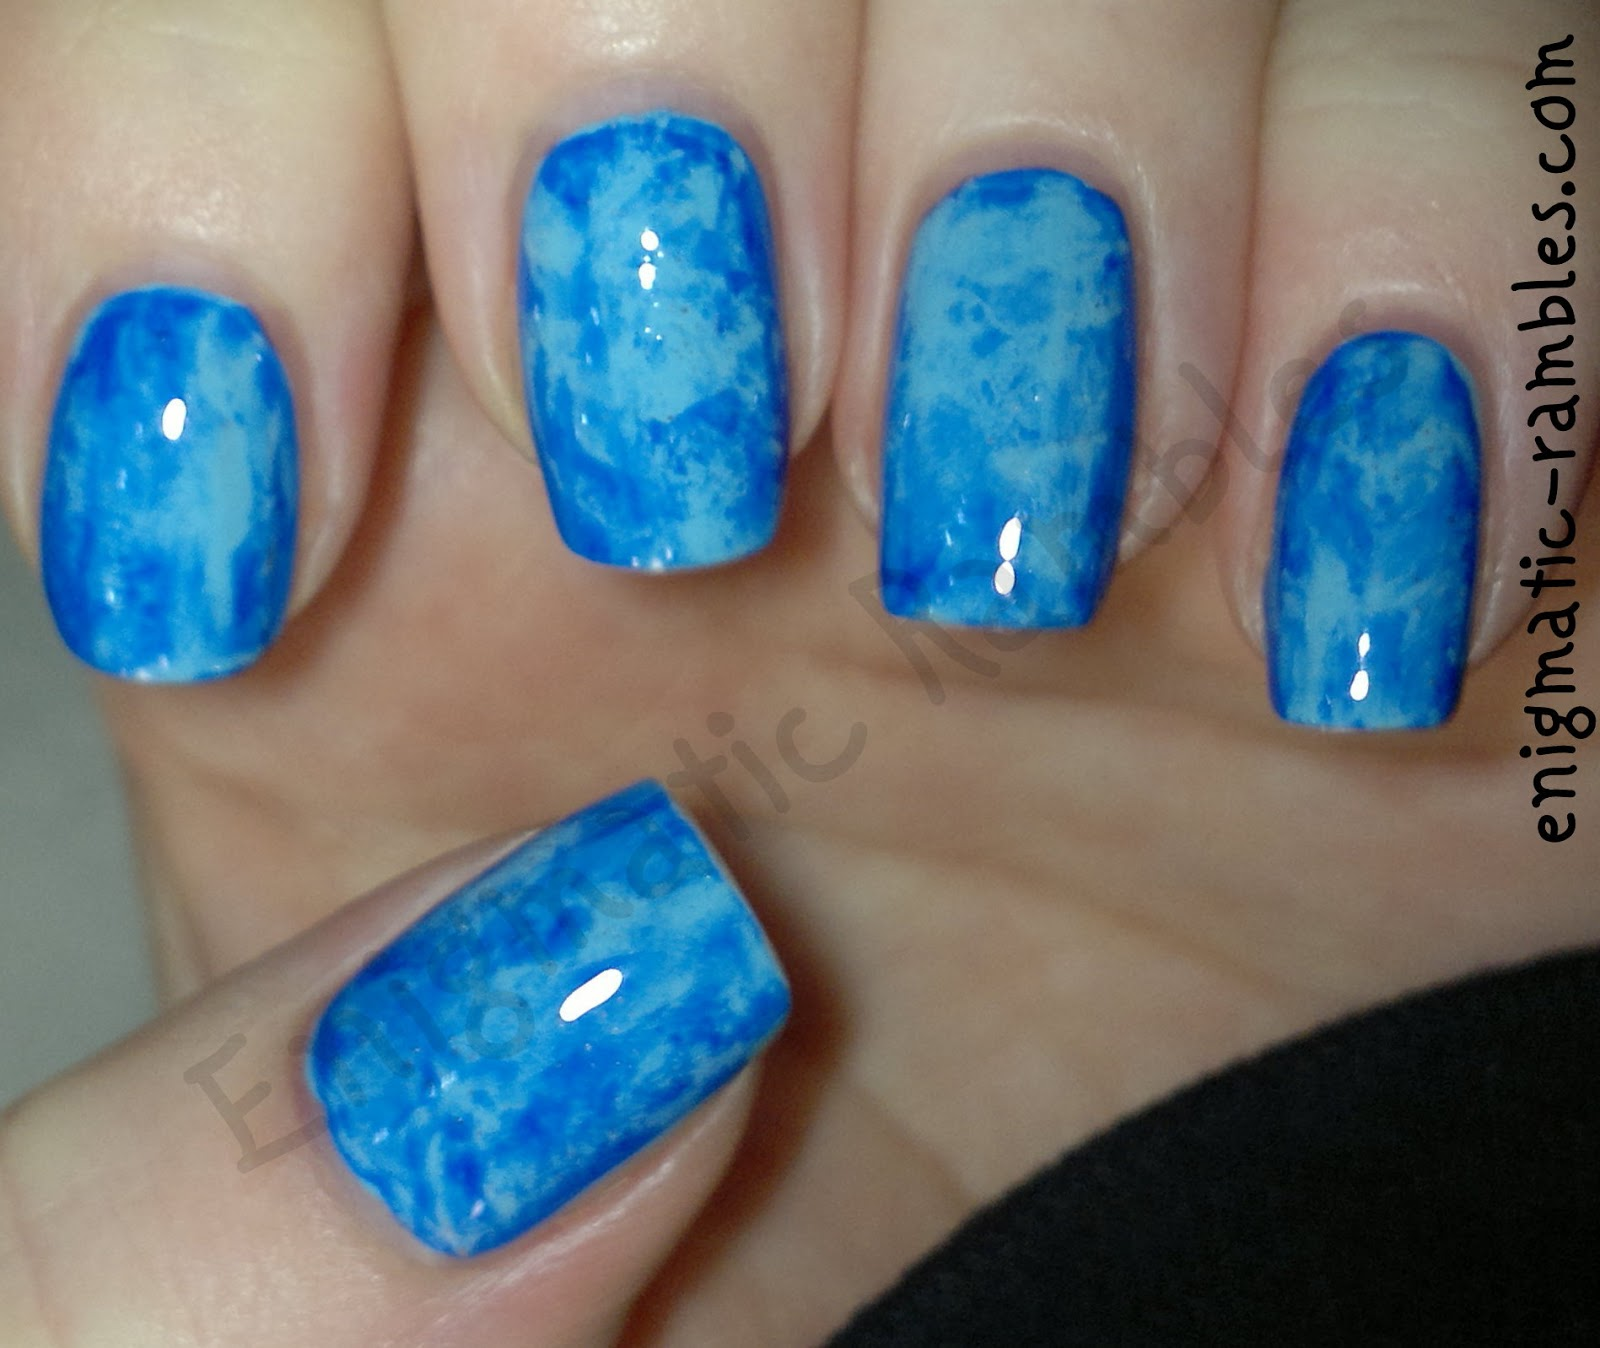 blue-marble-nails-maybelline-cool-blue-651-barry-m-blue-grape-317-saran-wrap-clingfilm